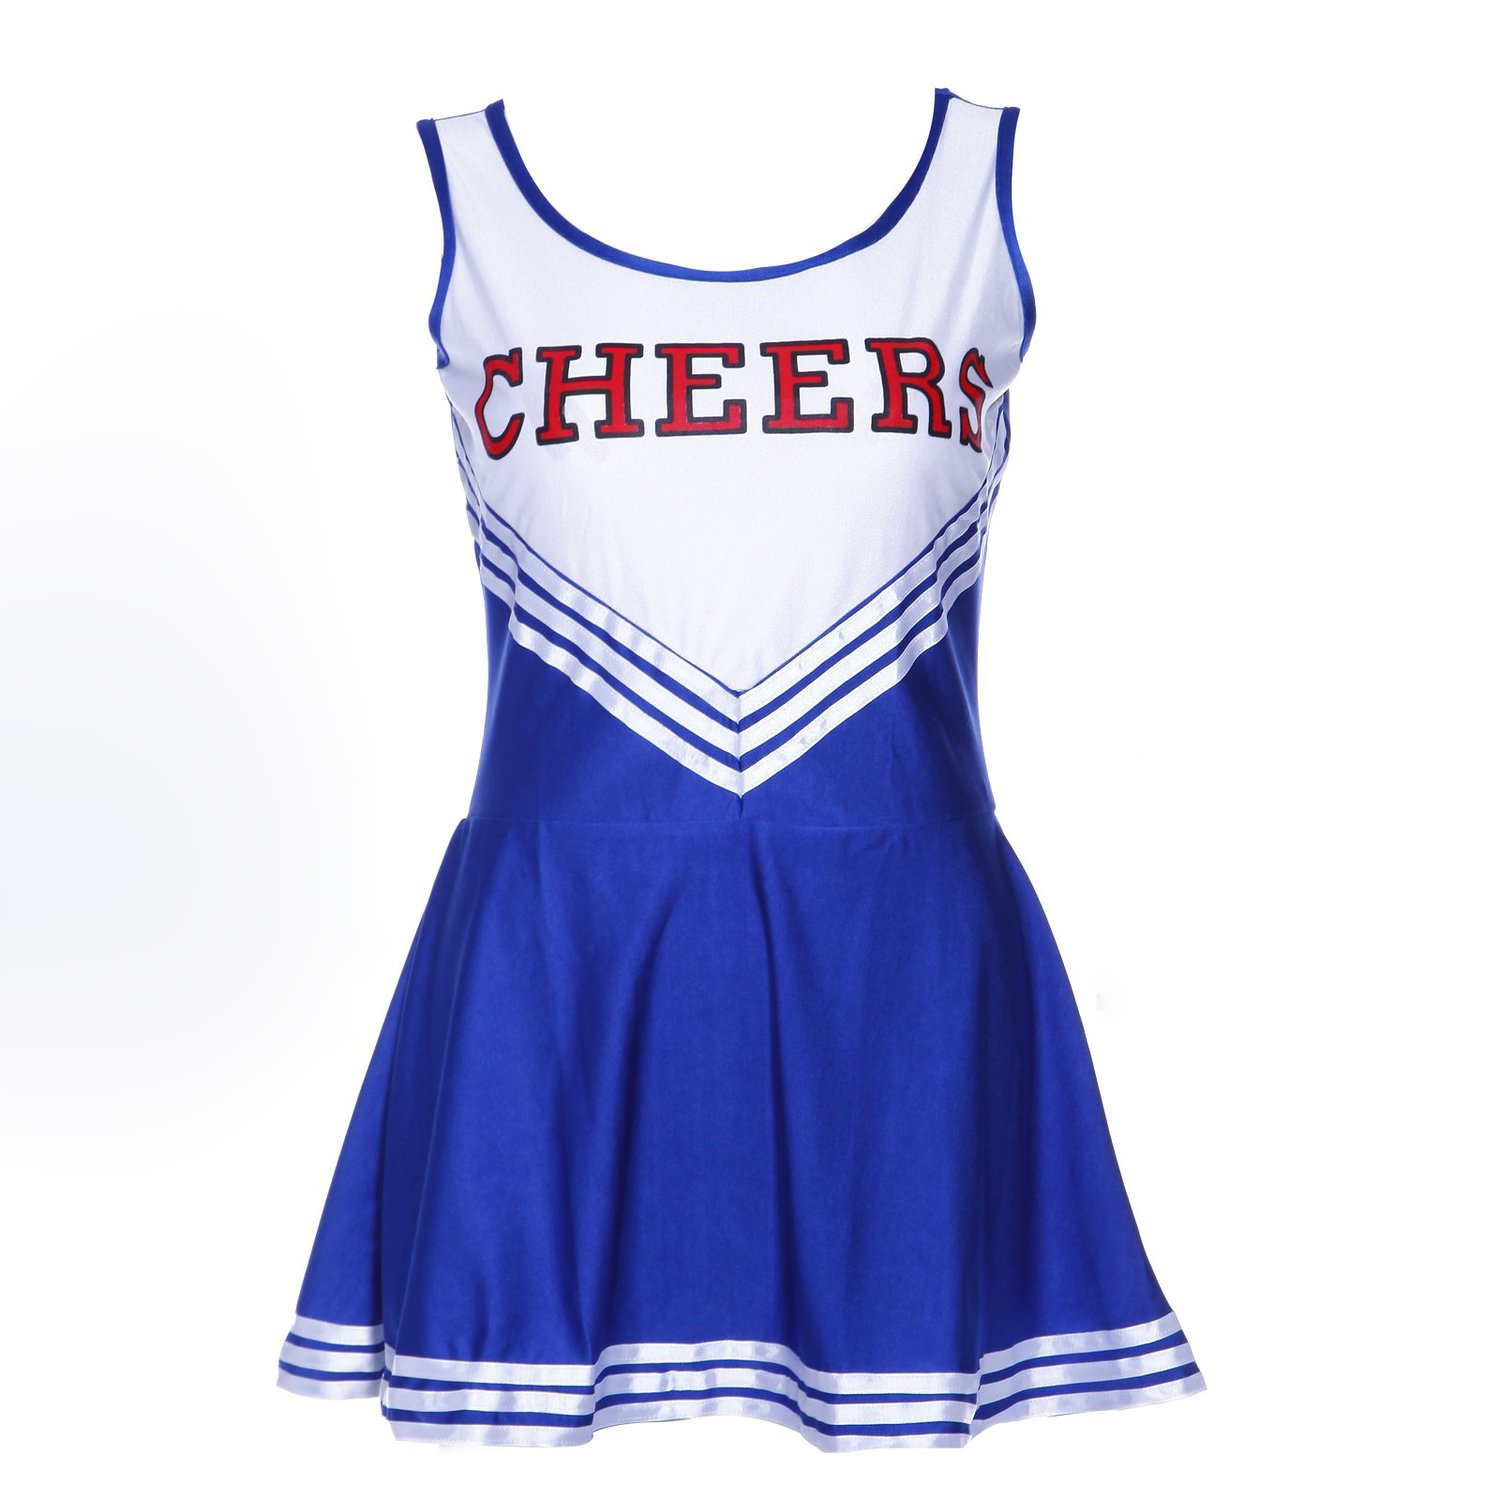 Pom-pom girl tank top dress cheer leader blue suit costume XL (42-44) school football